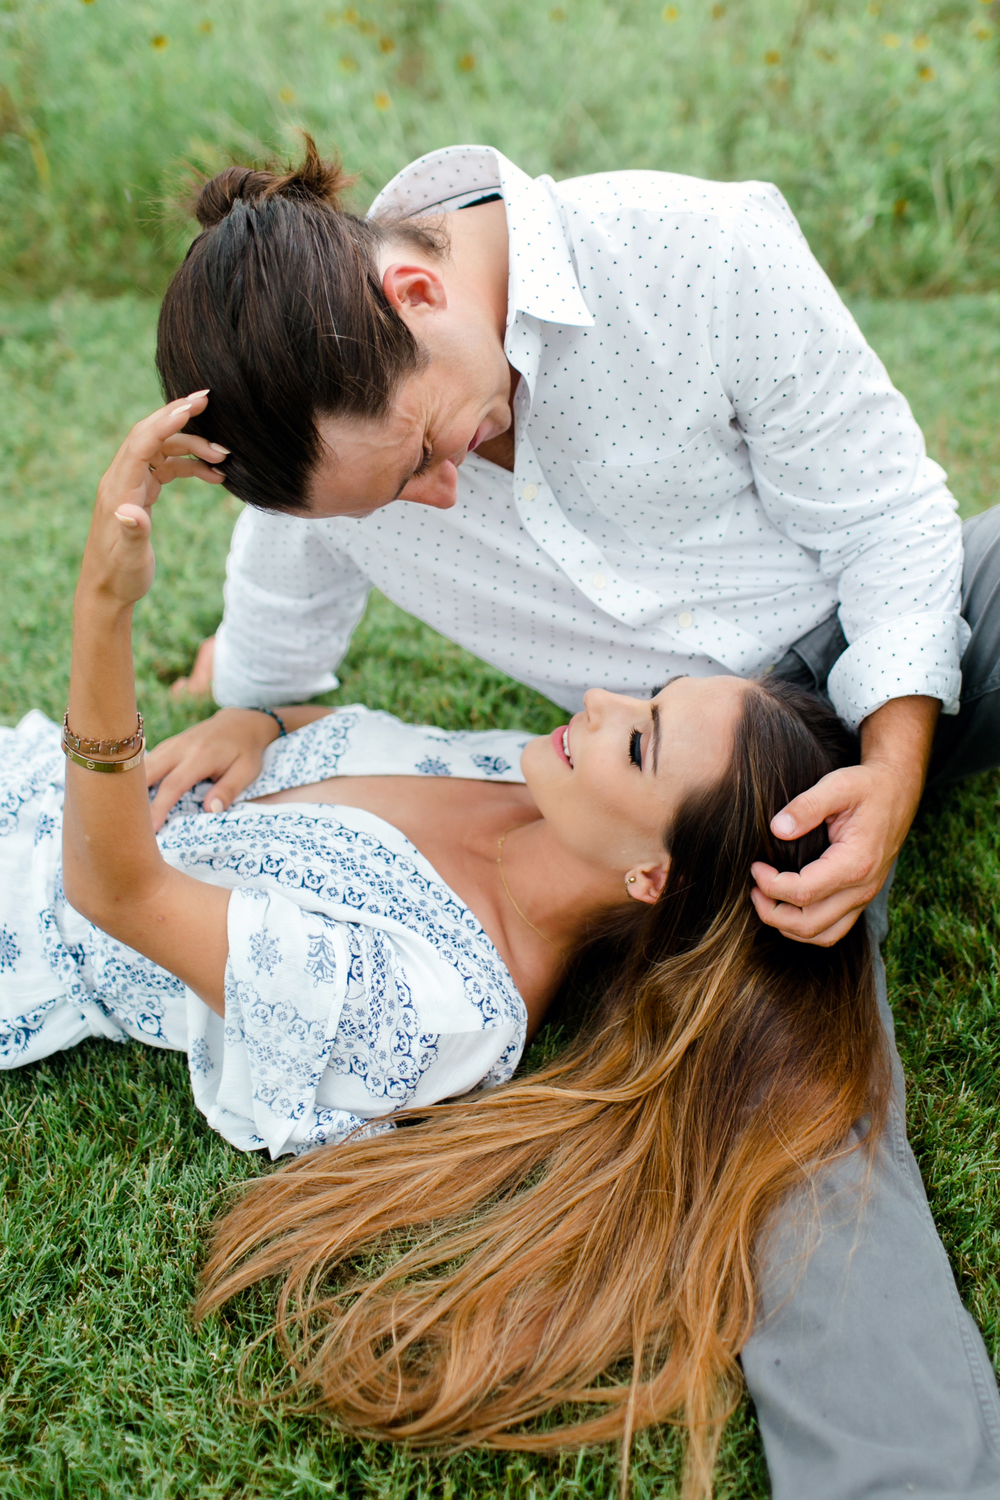 camp-lucy-boho-engagement-session-austin-texas-wedding-photographer-023.jpg